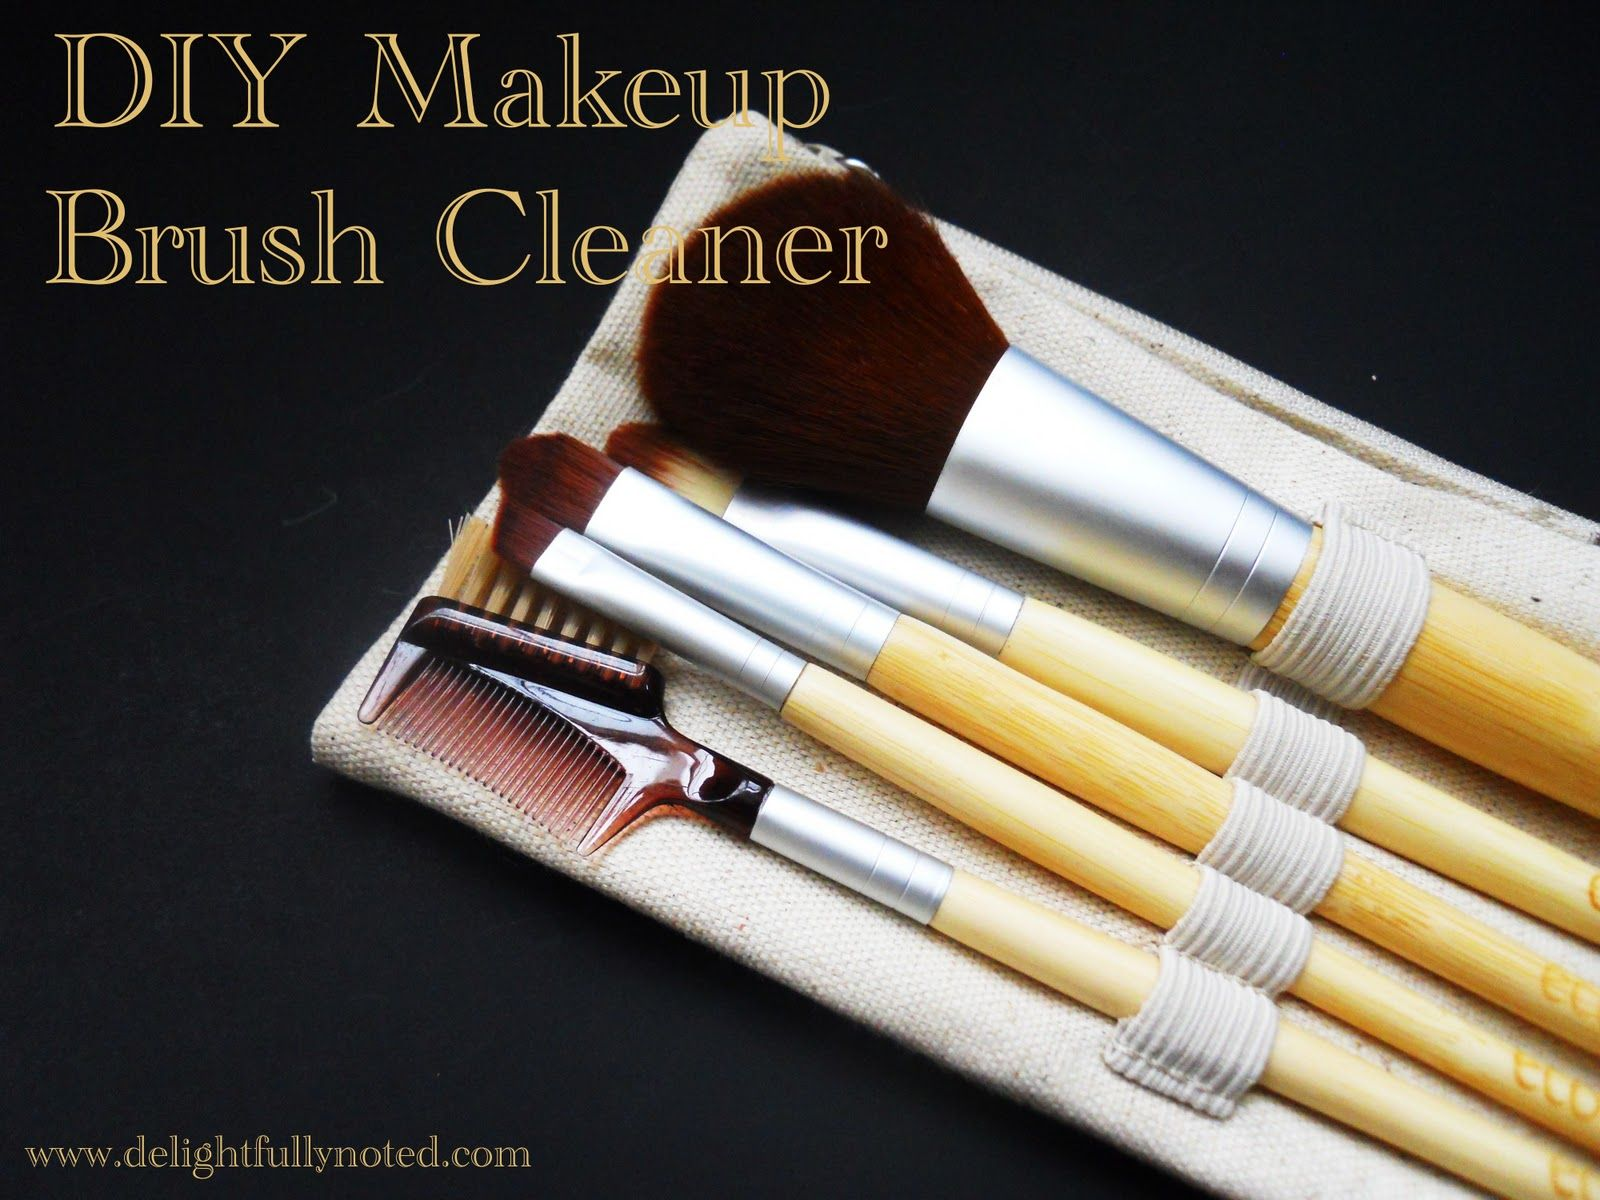 DIY Makeup Brush Cleaner Diy makeup brush, Diy makeup